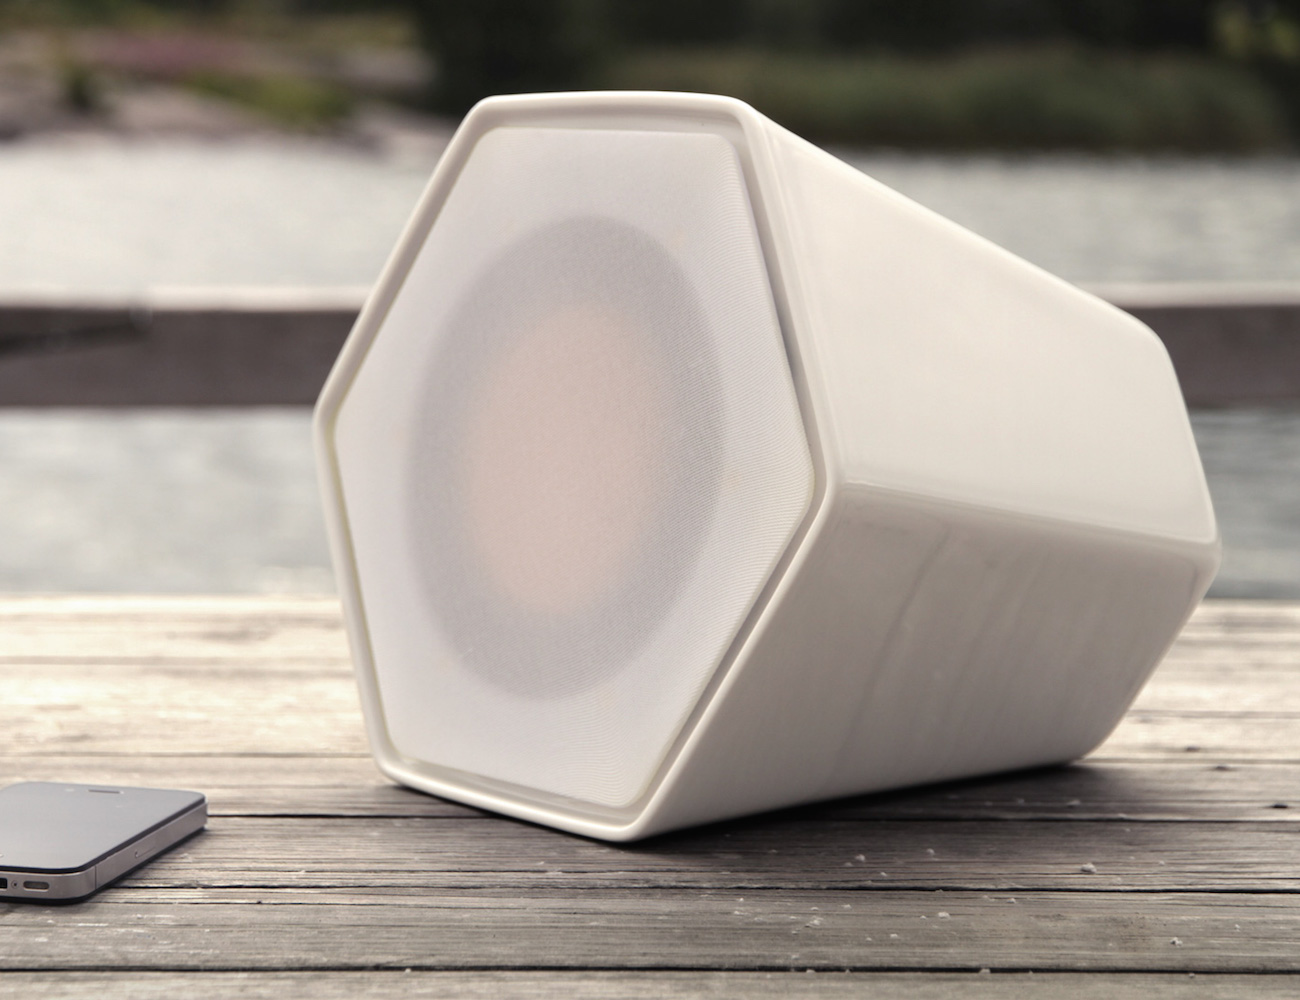 wireless speakers for office. unmonday model 43 wireless speaker speakers for office